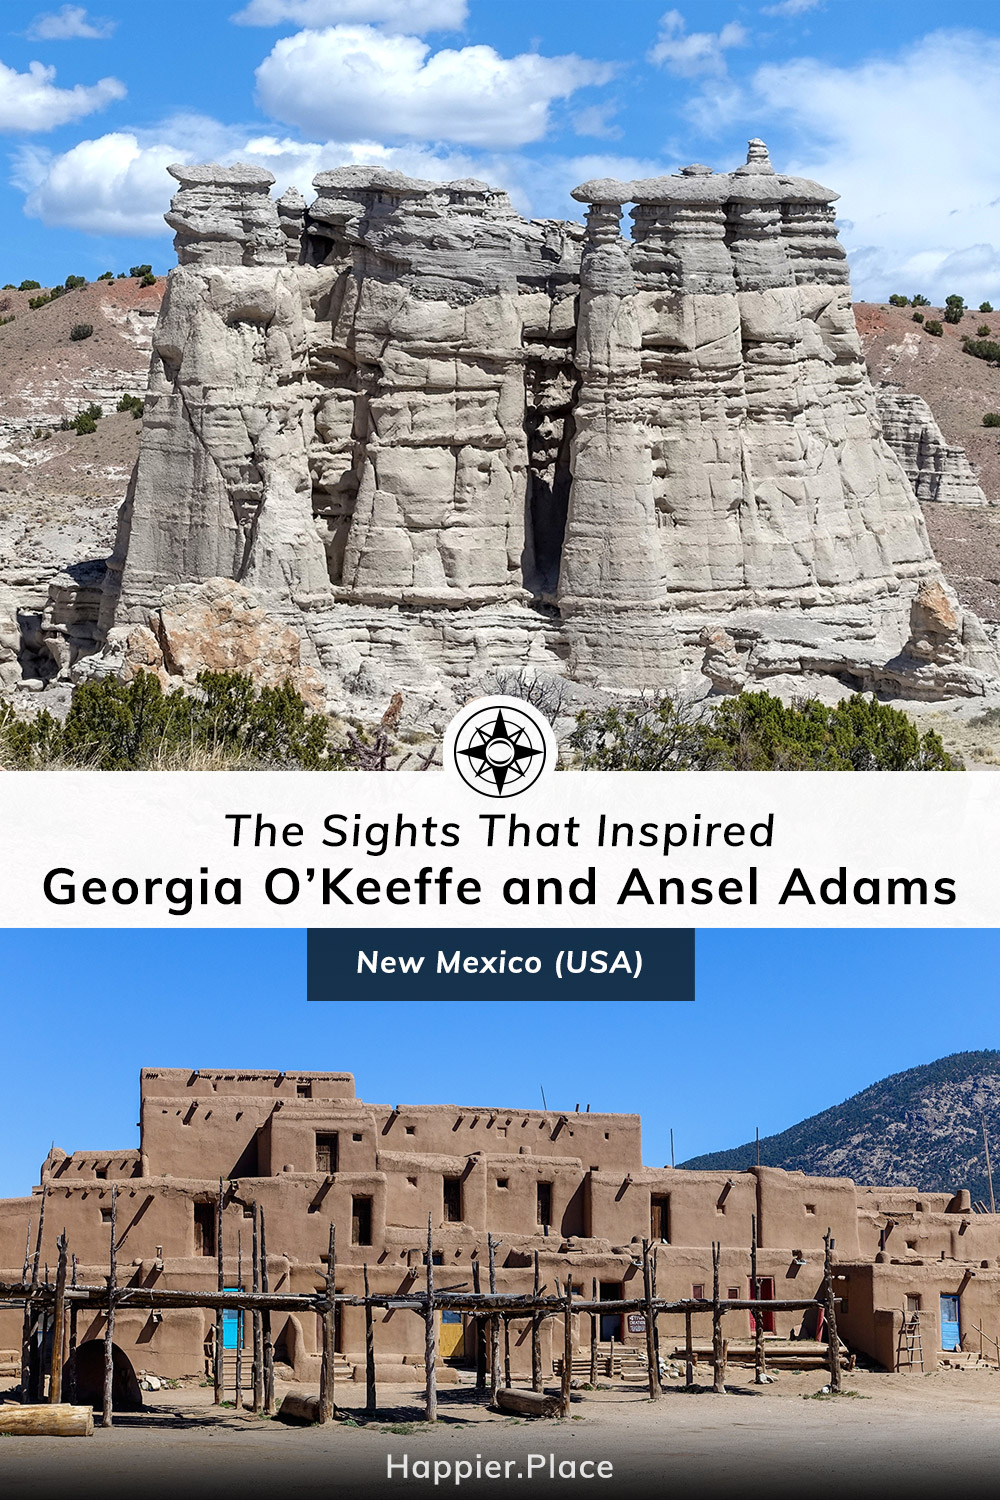 The Sights That Inspired Georgia O'Keeffe and Ansel Adams in New Mexico, Plaza Blanca, Pueblo Taos